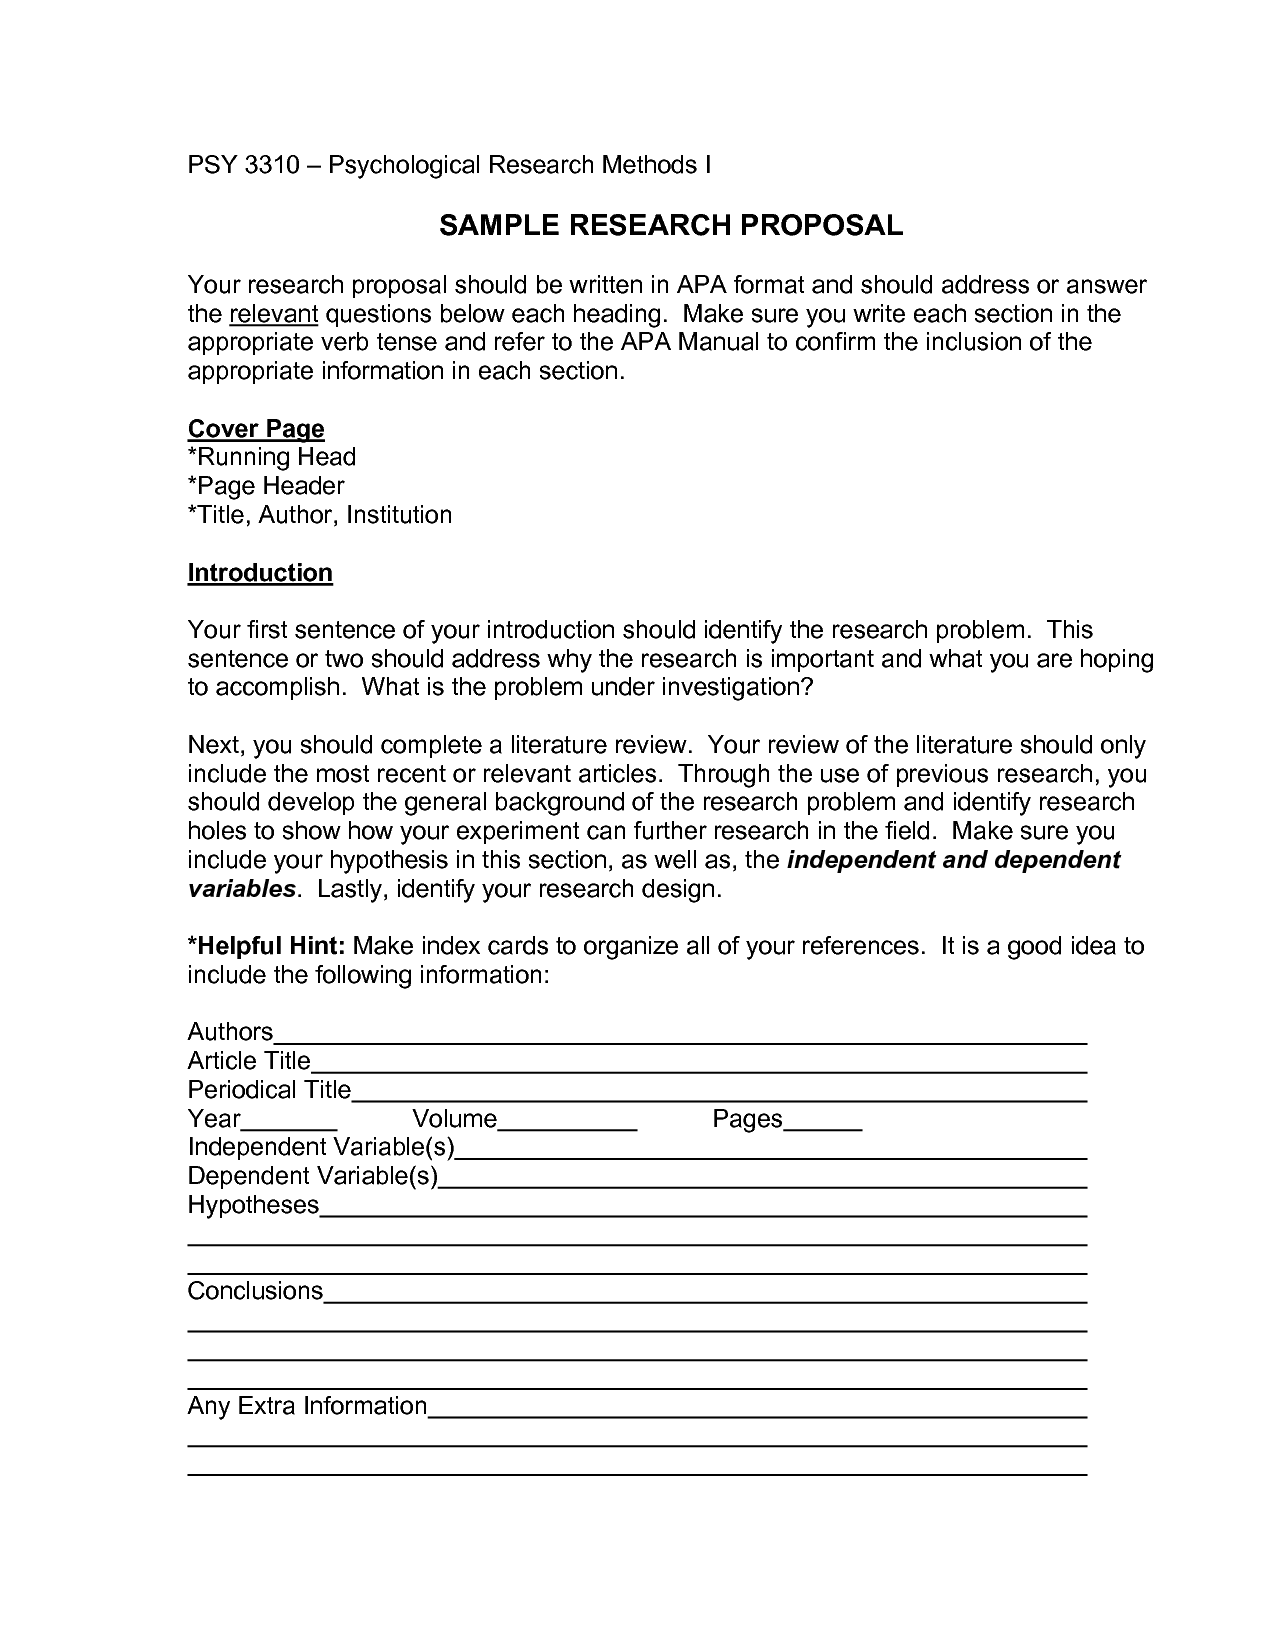 006 Apa Research Proposal Template Best Style Format With Sample Essay Writing Psychology Paper Of Beautiful Animal Testing Thesis Full